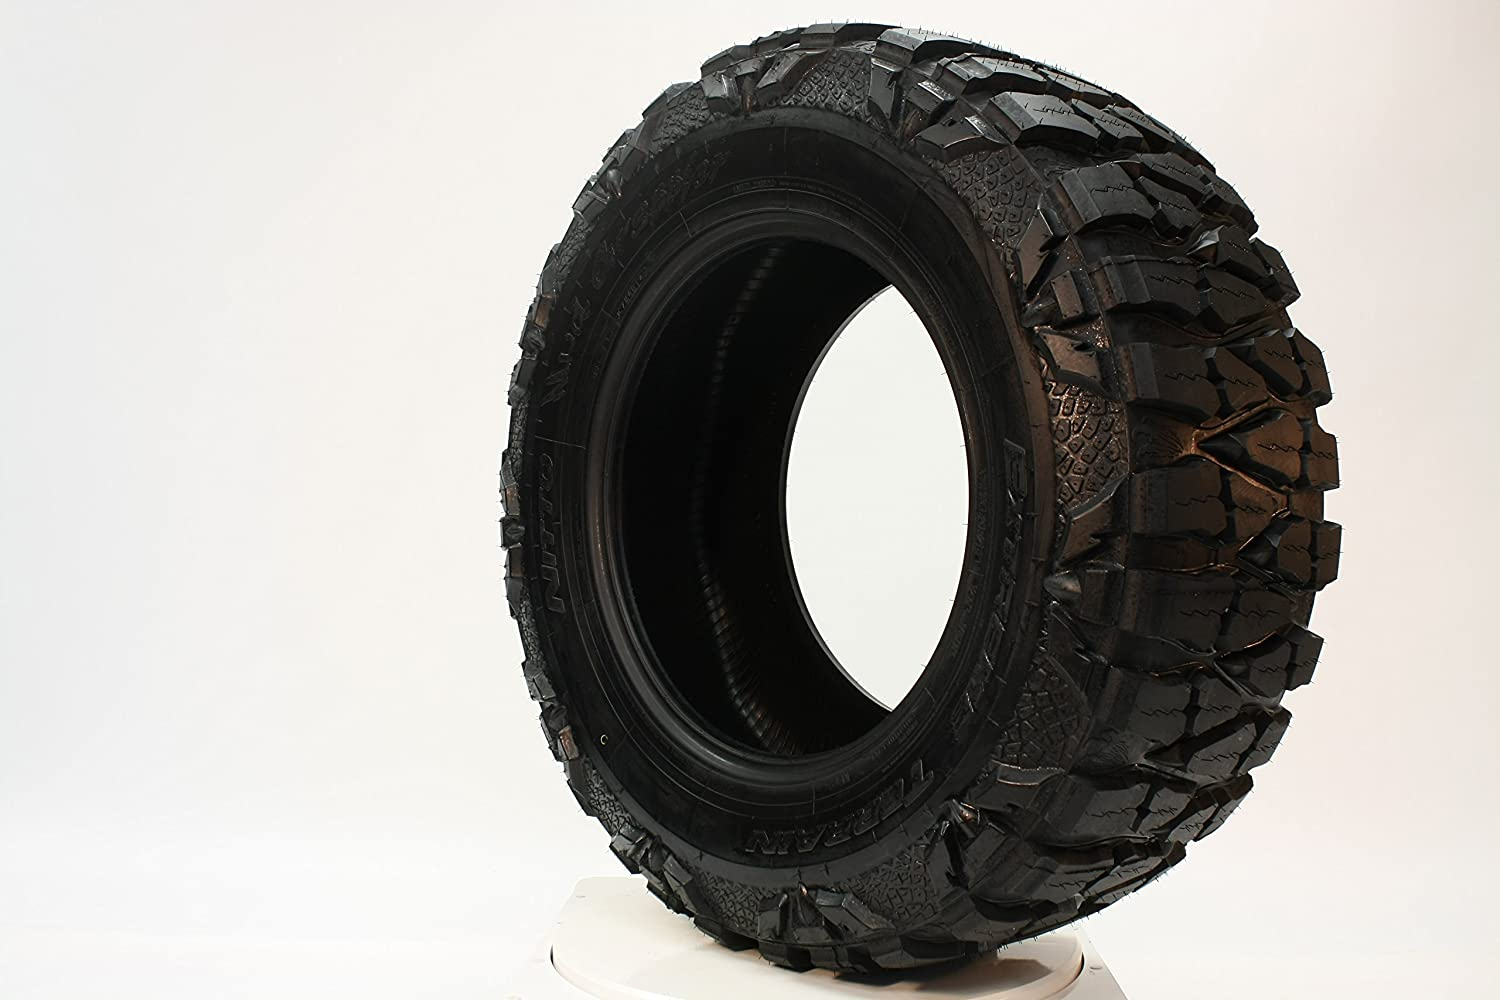 35x12 5r17 Tires Best 35x12 5x17 Tires For Trucks 4 Wheel Parts >> Nitto Mud Grappler All Season Radial Tire 35x12 50r17 10 125p